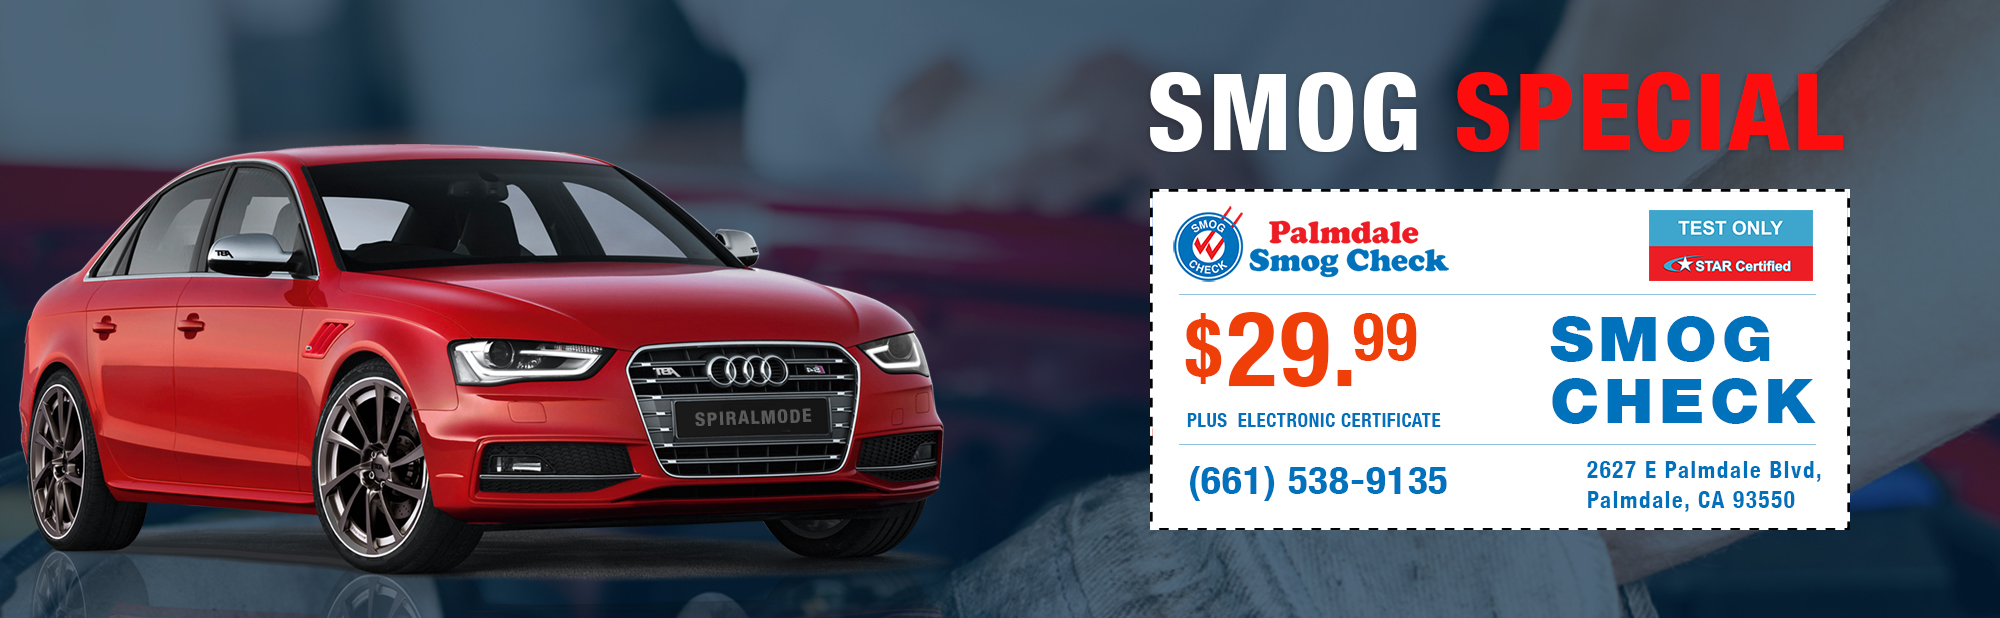 Smog Check Coupon Palmdale